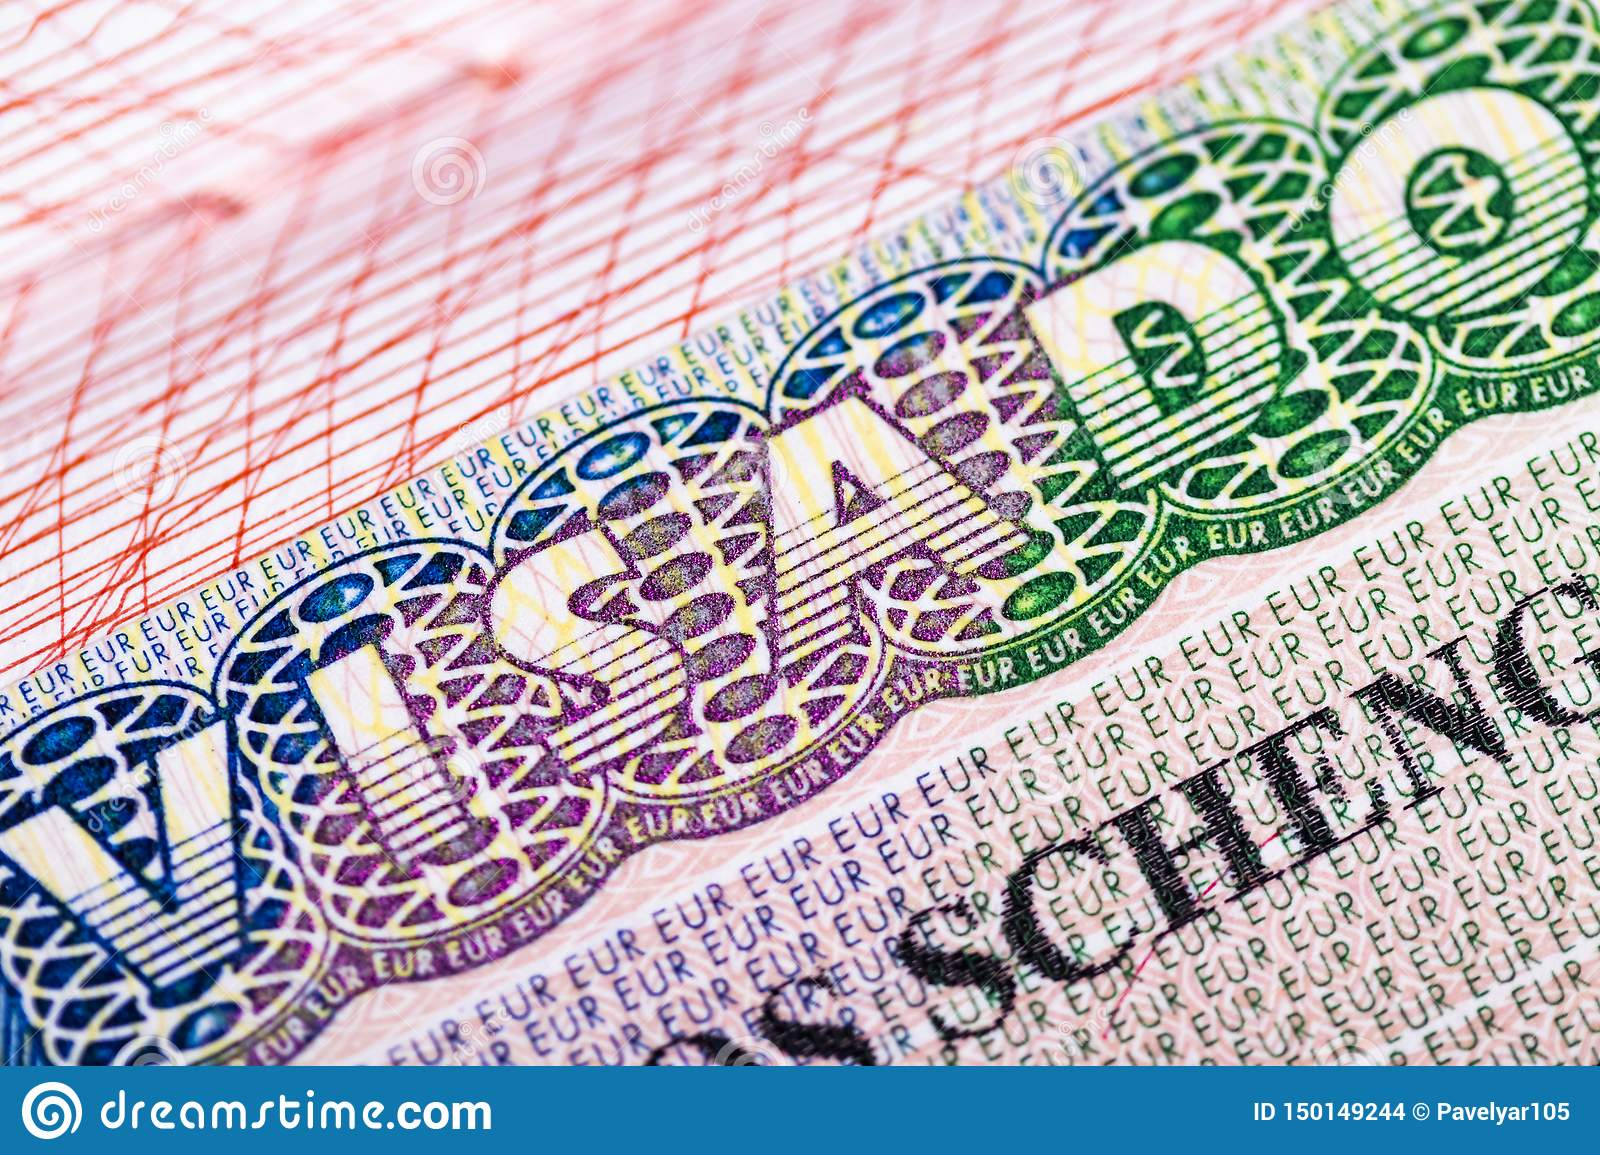 Stamp in the passport for travel and entry into Spain